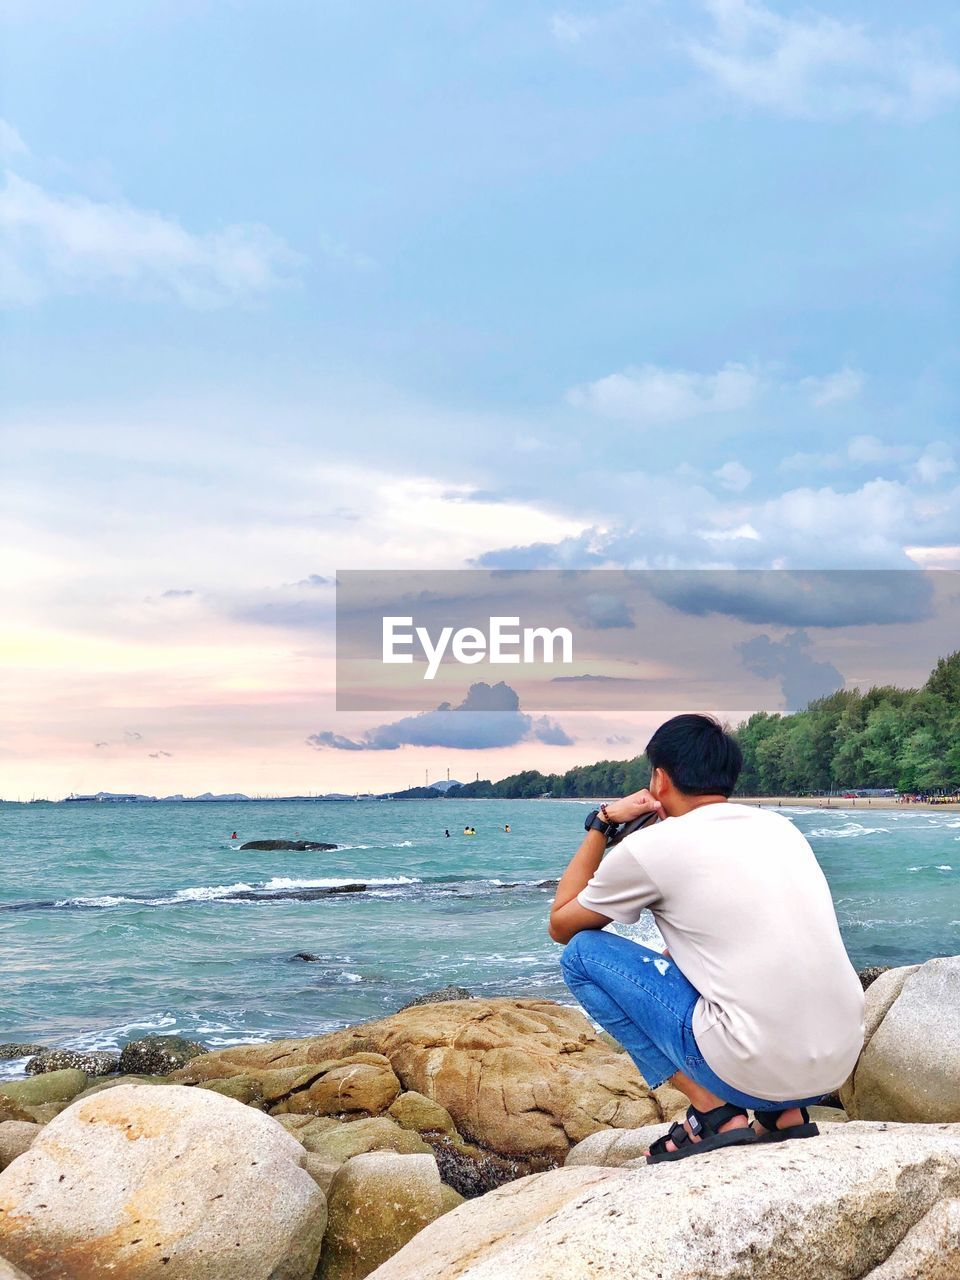 water, real people, one person, rock, sea, rock - object, solid, leisure activity, lifestyles, sky, beauty in nature, scenics - nature, sitting, casual clothing, rear view, cloud - sky, land, non-urban scene, outdoors, looking at view, horizon over water